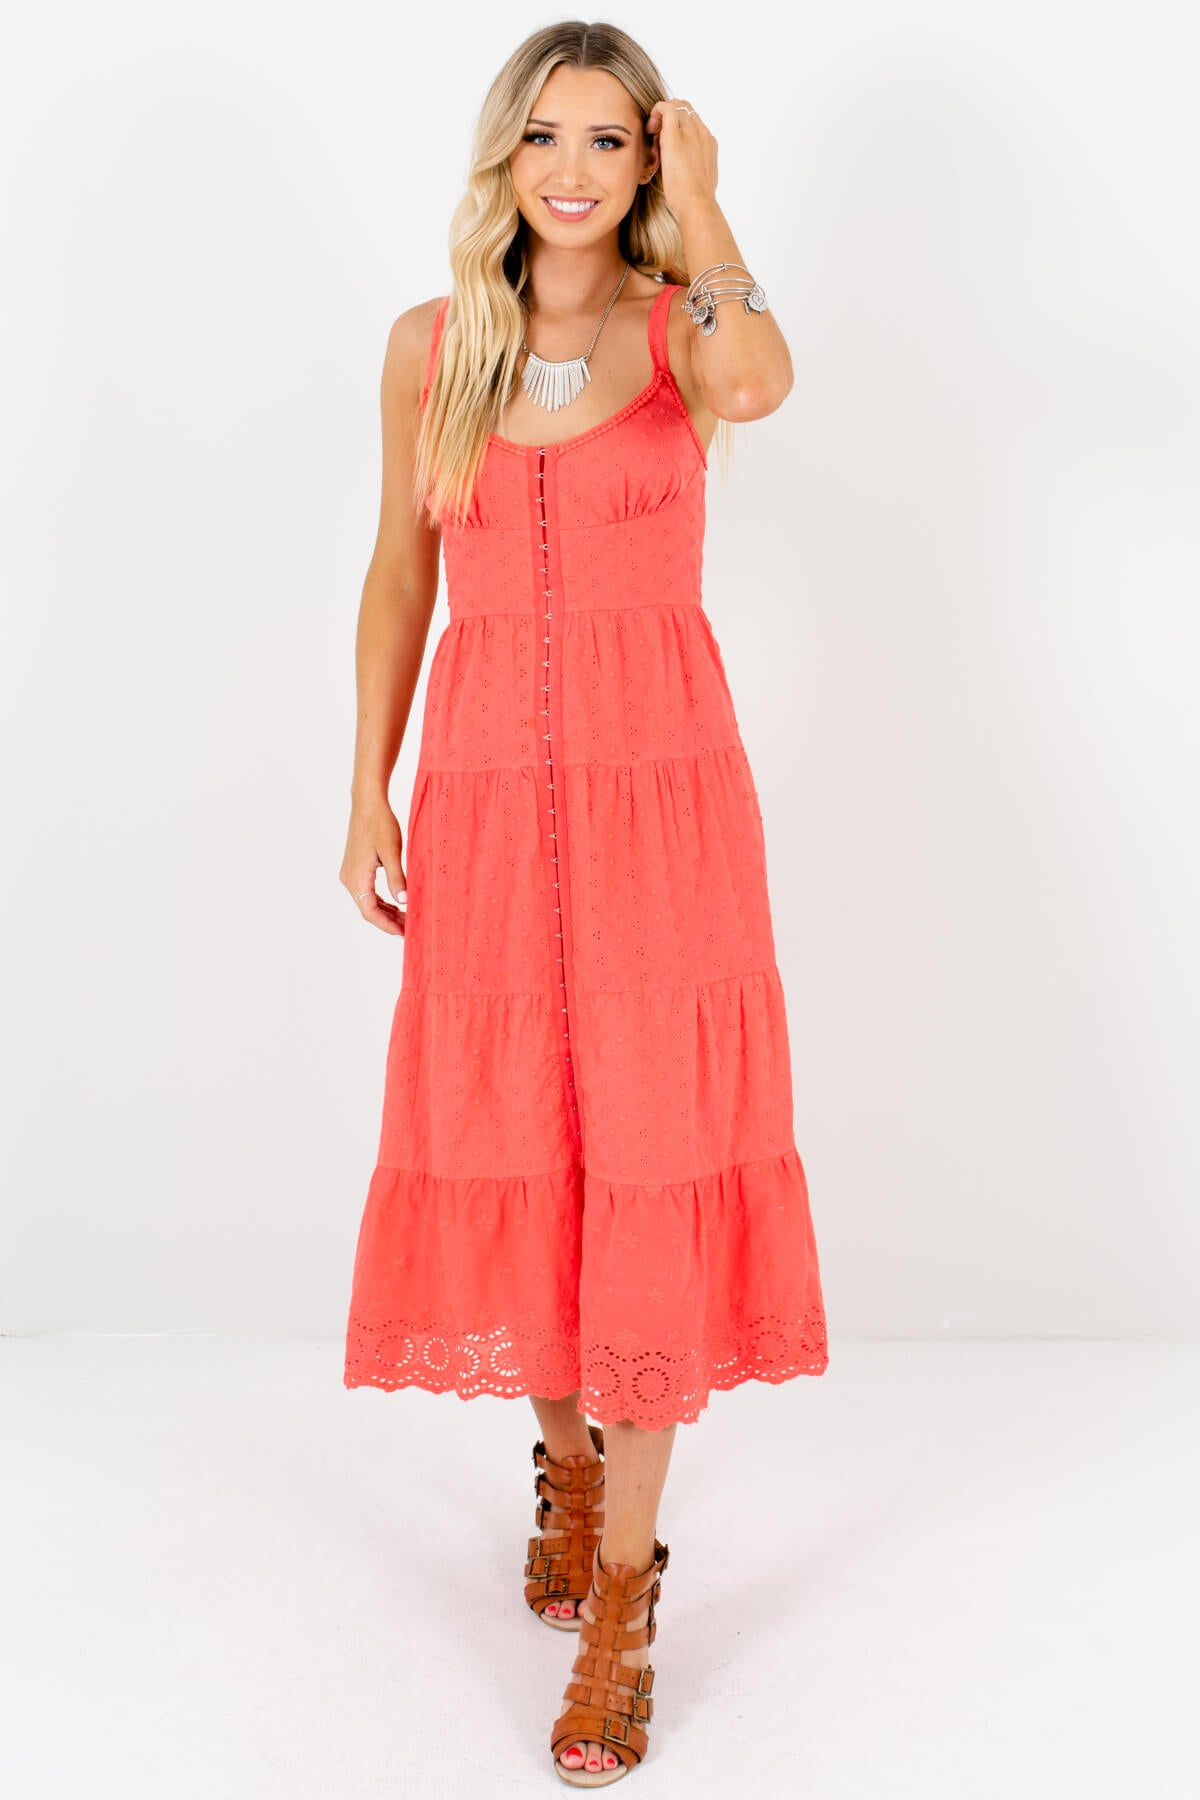 Coral Eyelet Embroidered Crochet Midi Dresses Affordable Online Boutique